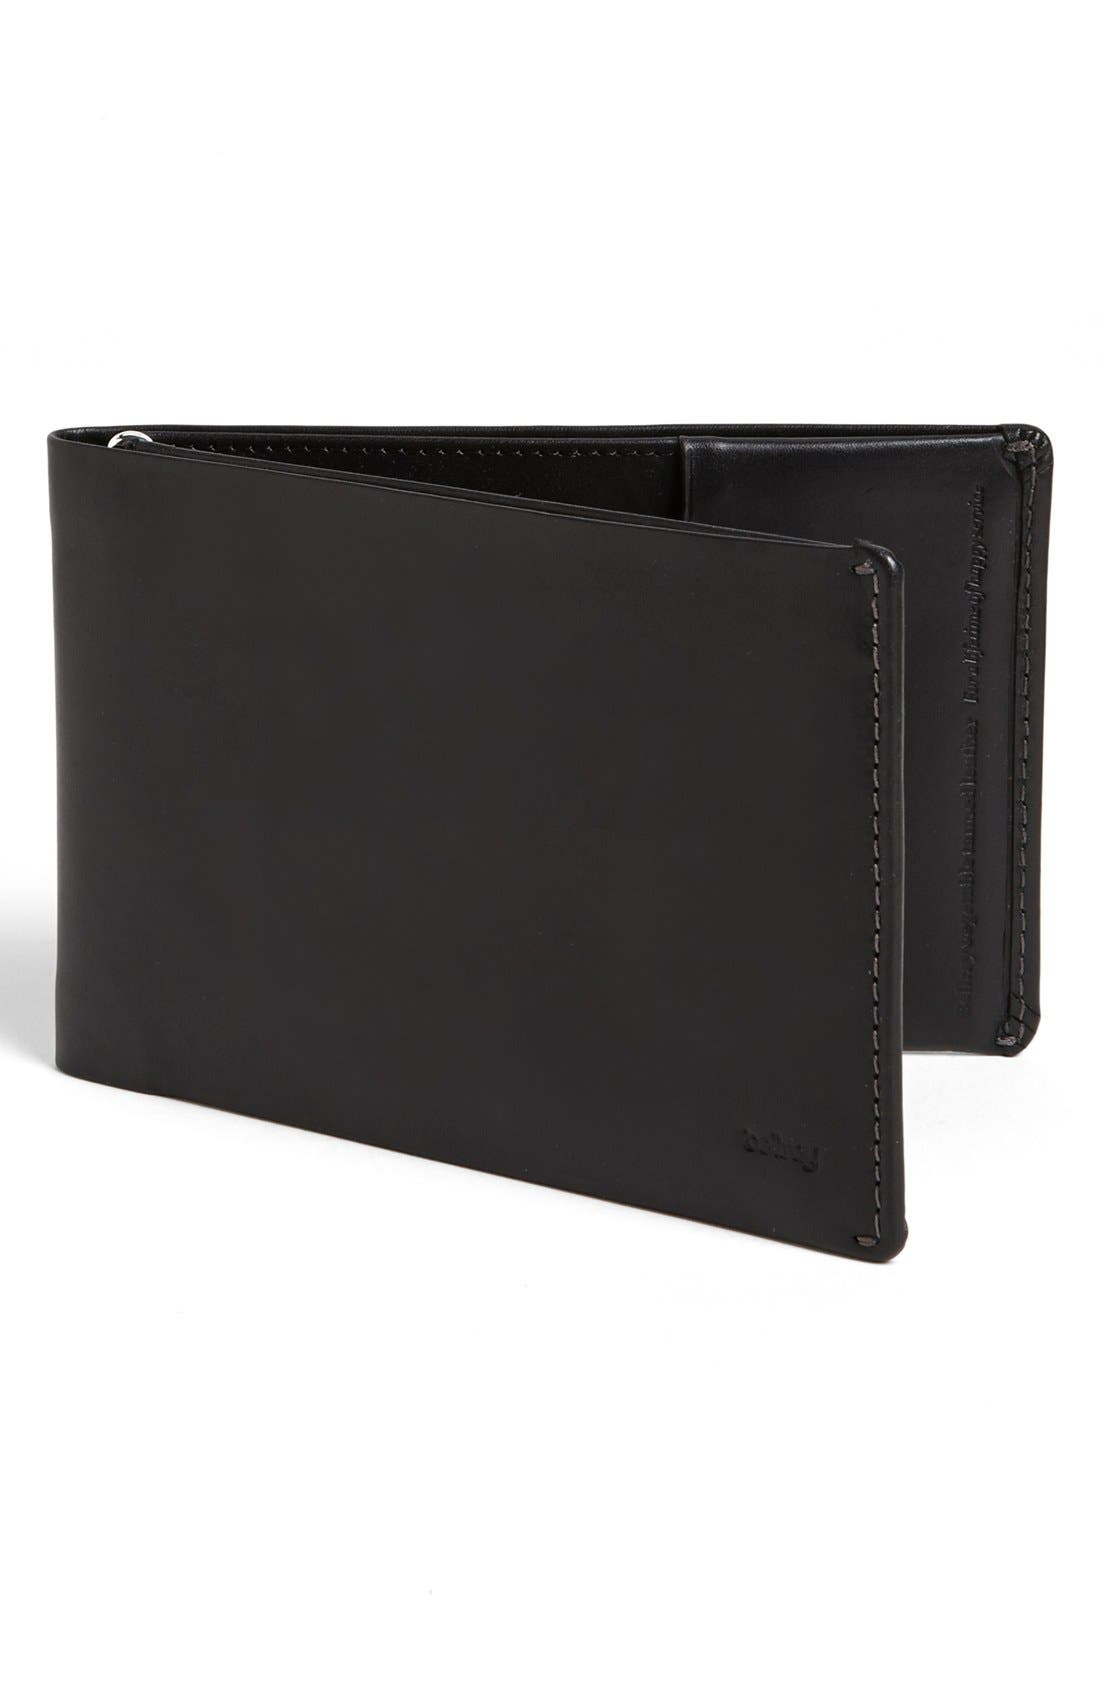 Alternate Image 1 Selected - Bellroy Travel Wallet